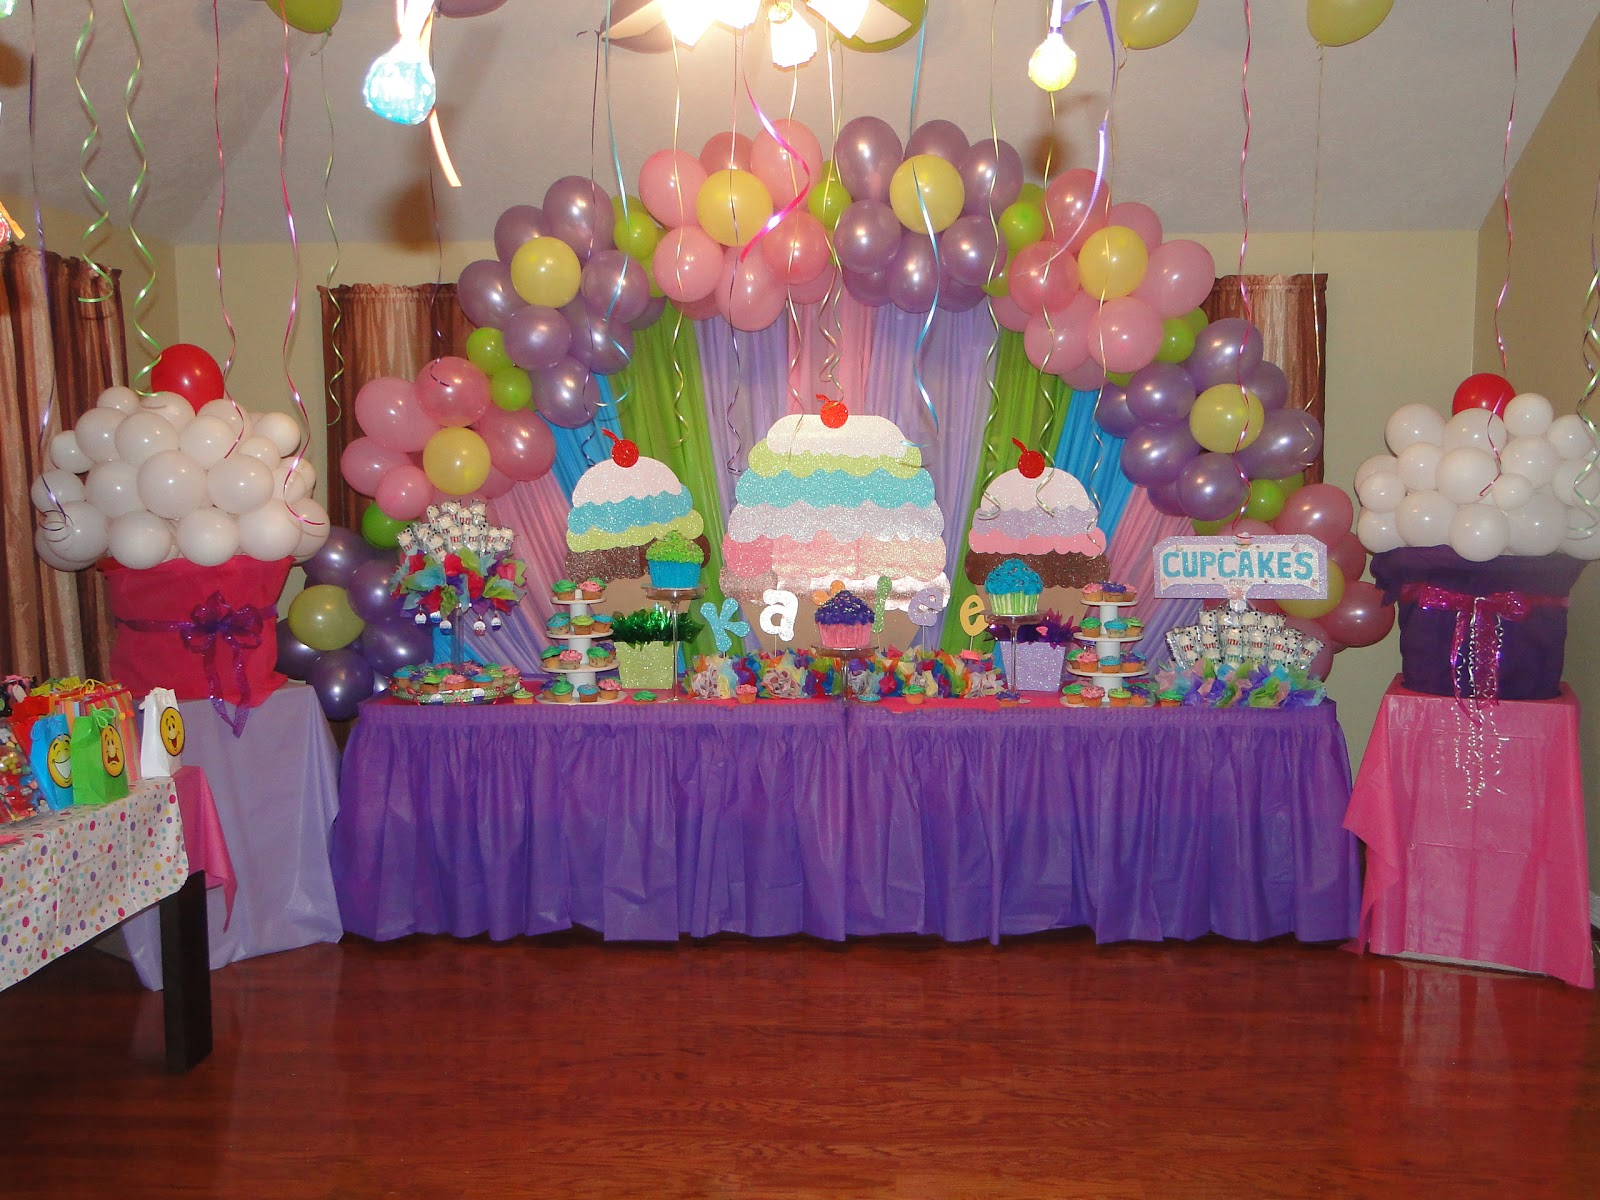 Cupcake Decorating Ideas Birthday : Unforgettable Creations Designed by Maria: CUPCAKE THEMED ...